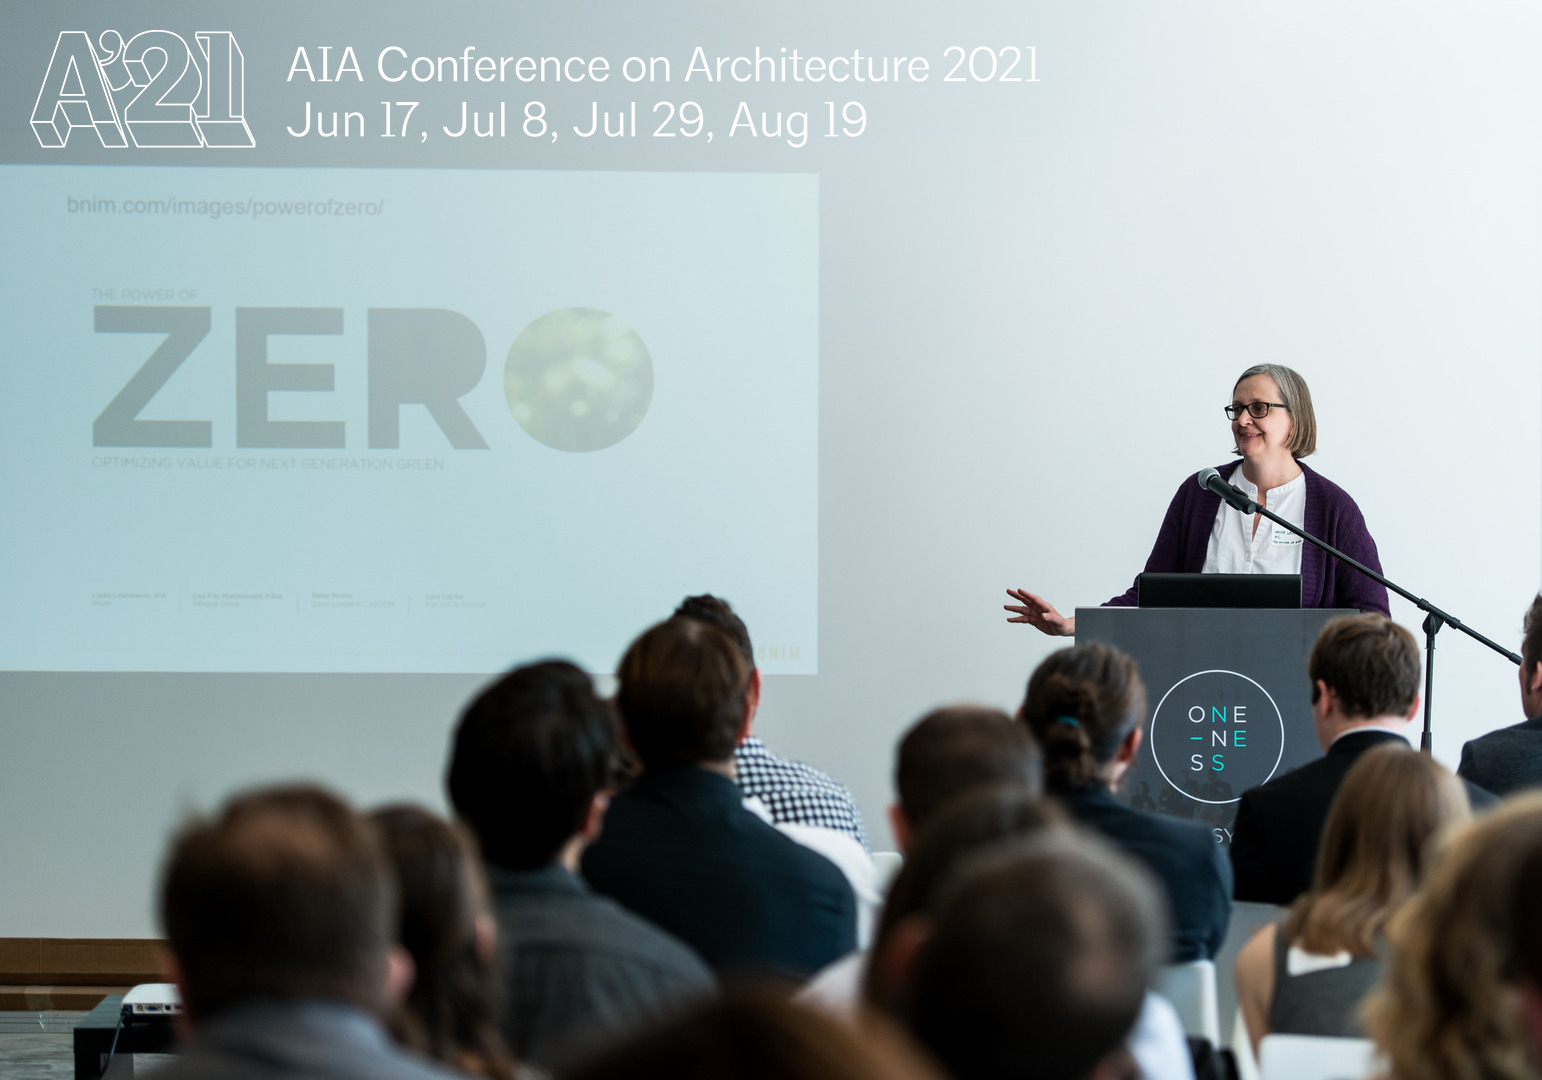 Laura Lesniewski to moderate Keynote Panel at AIA Conference on Architecture 2021: Selling Sustainability to Your Clients